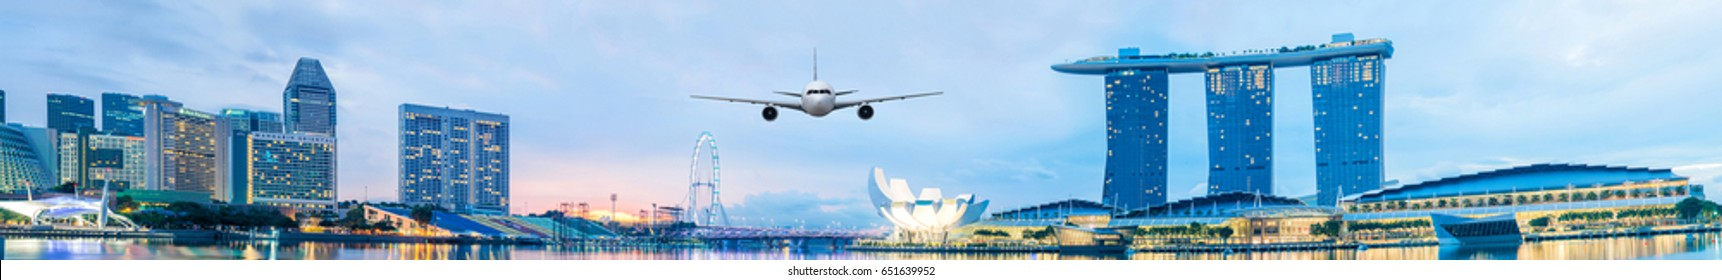 Front of real plane aircraft,on Cityscape in Singapore background